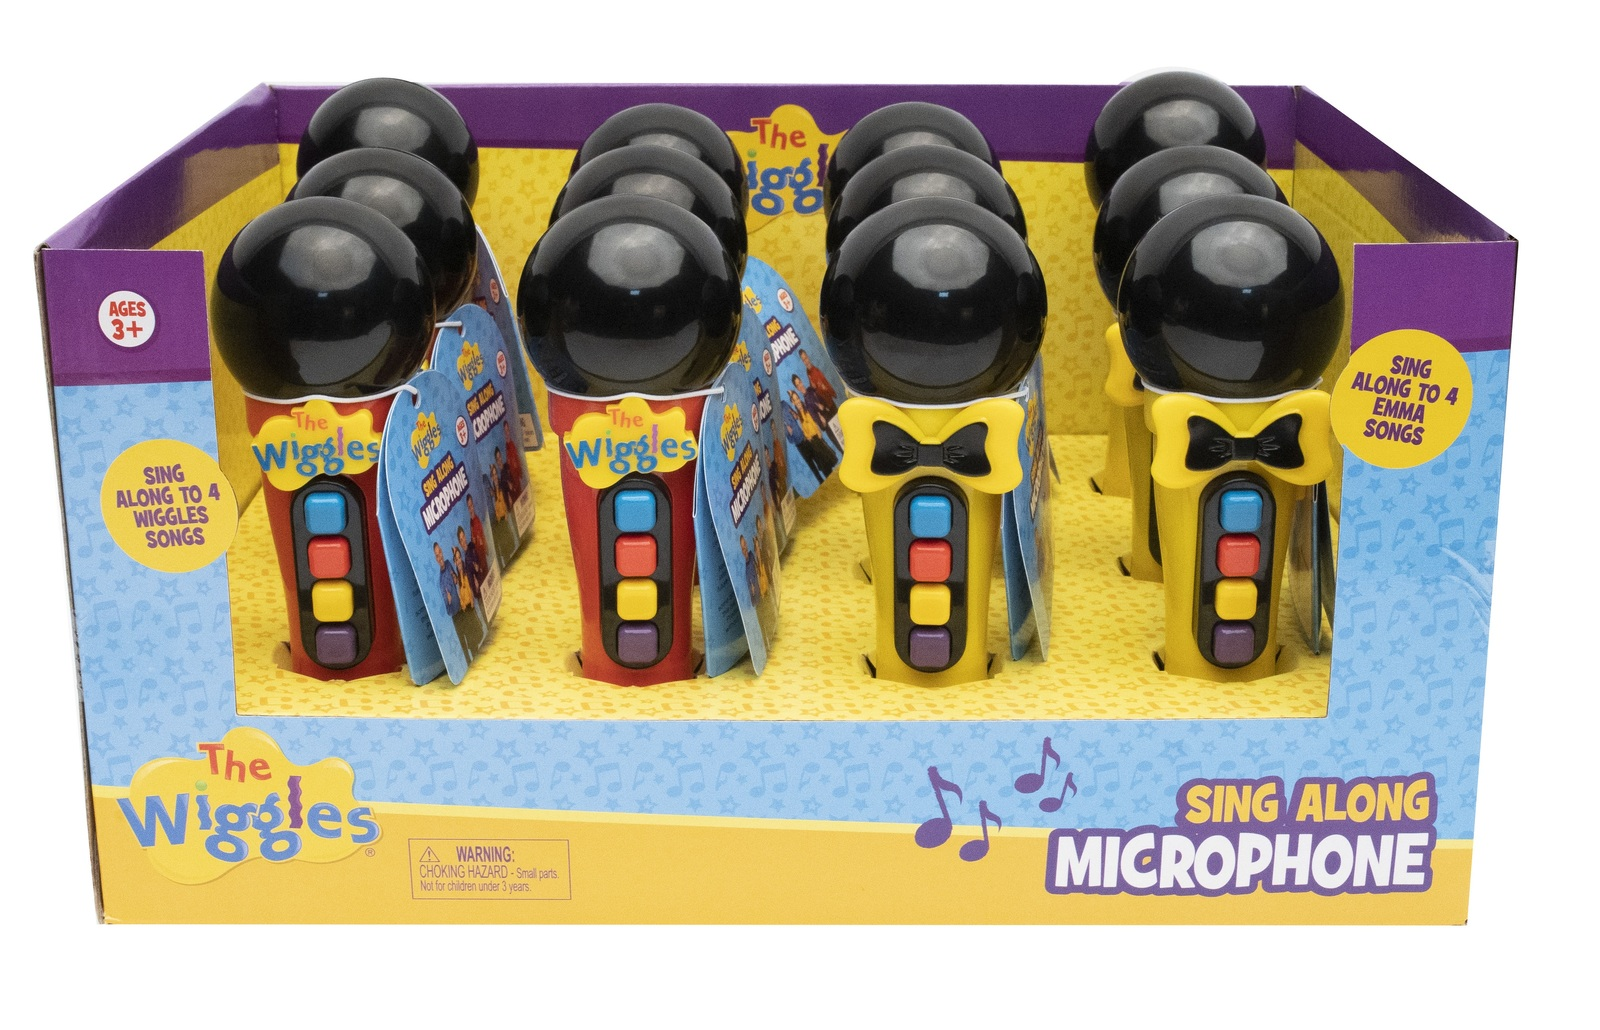 The Wiggles: Play Microphone - (Assorted Designs) image